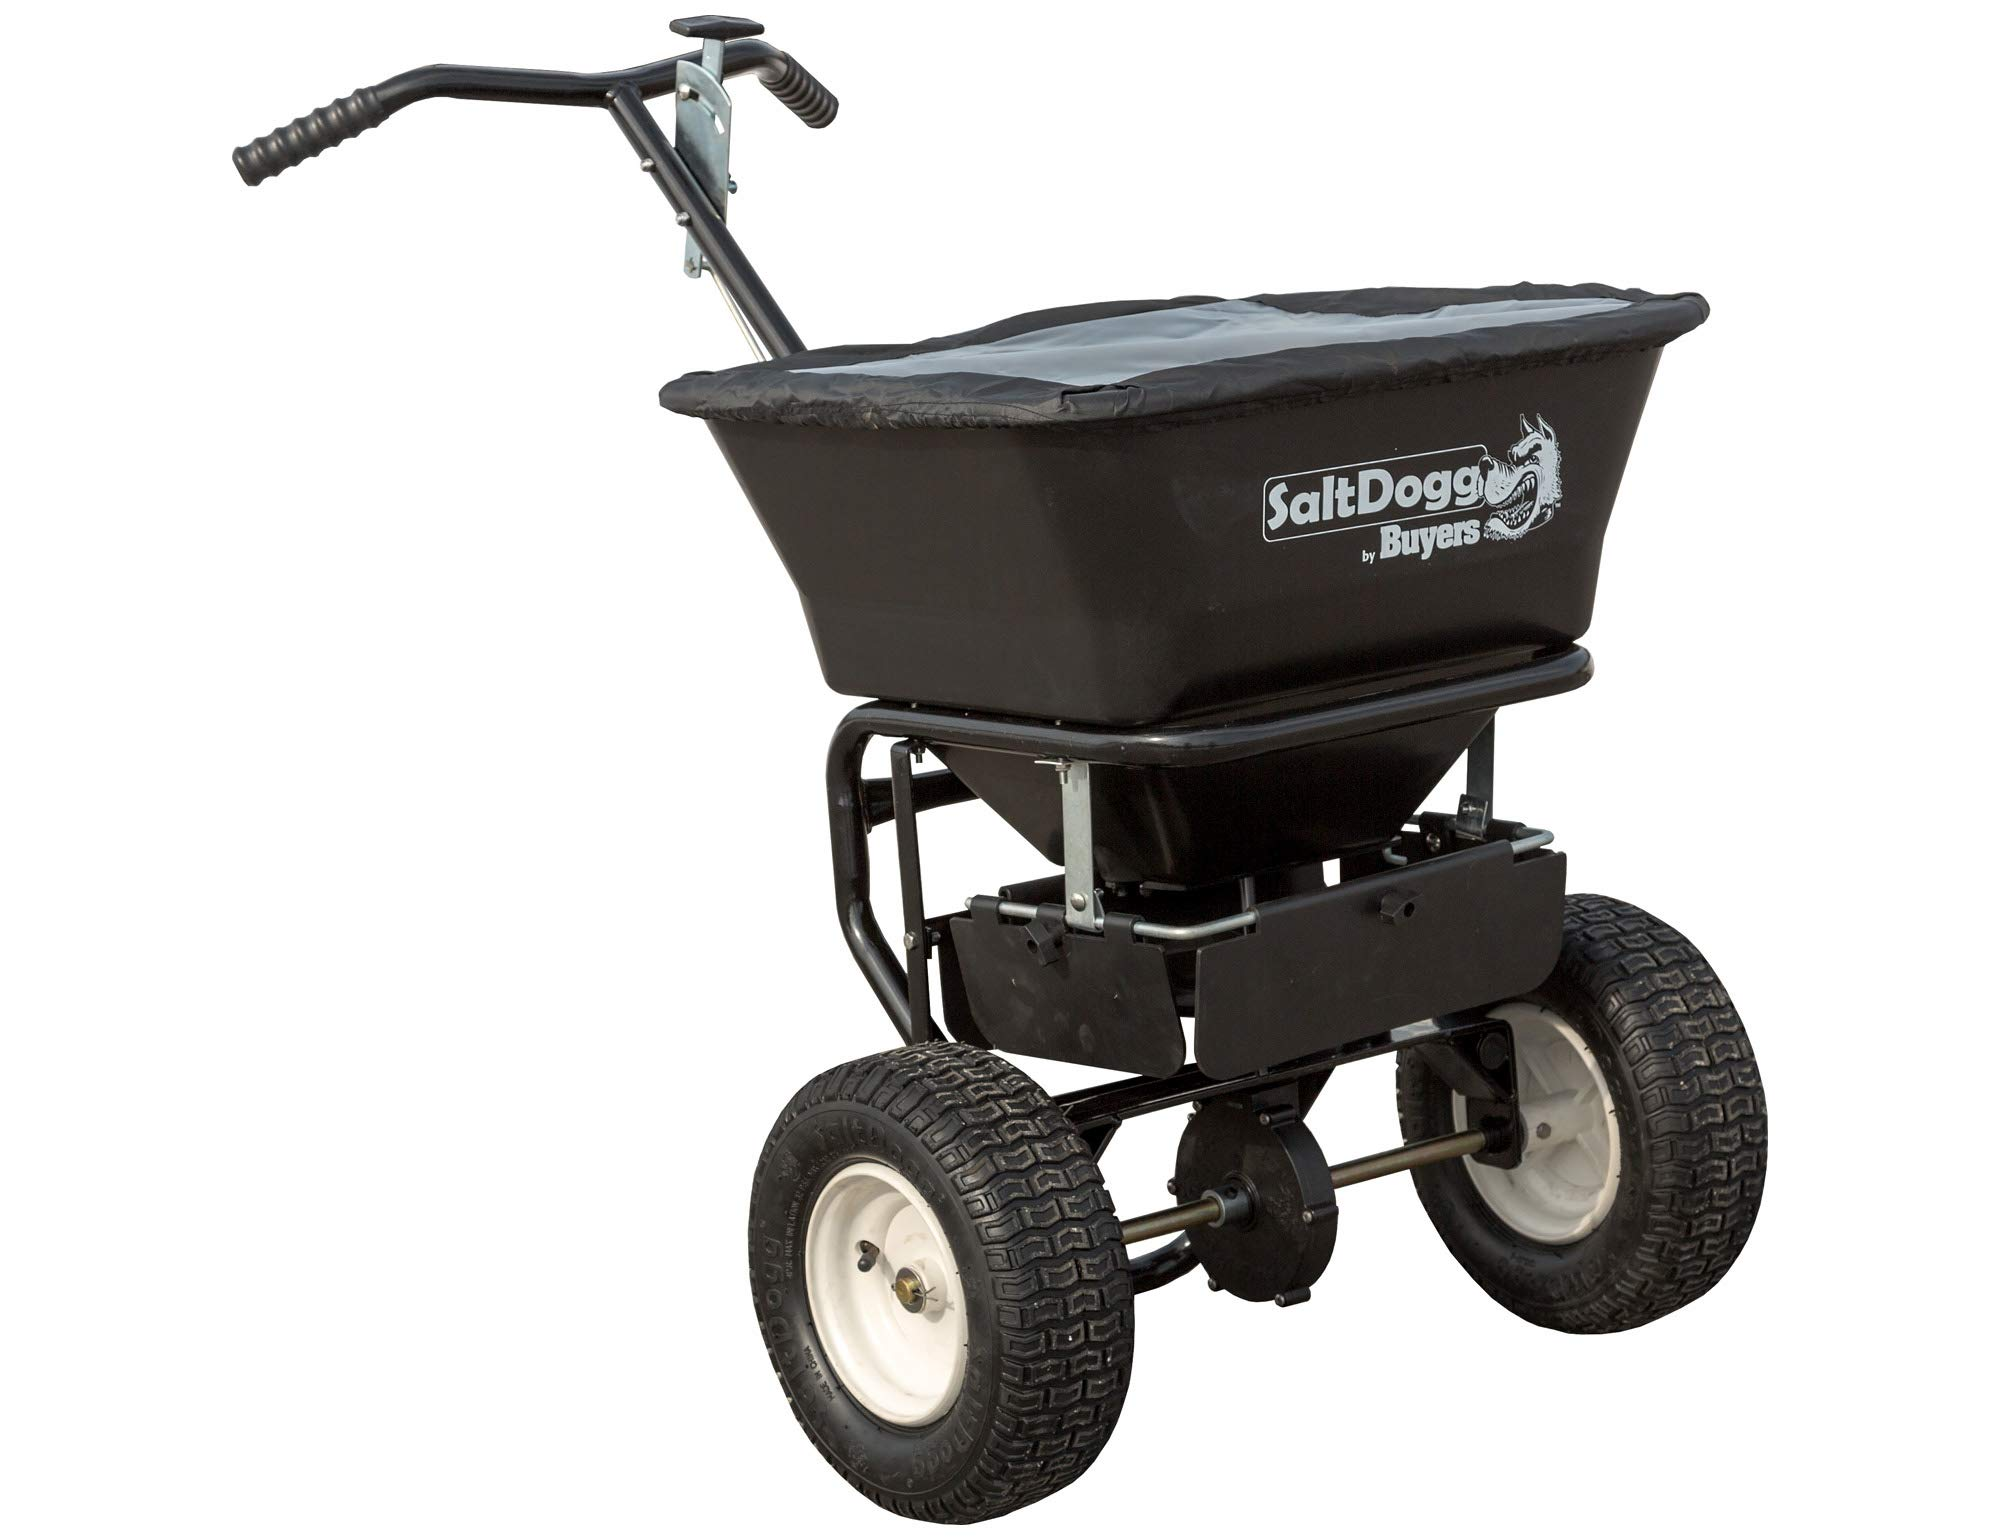 SaltDogg WB101G Professional 100 lb Capacity Walk Behind Broadcast Salt Spreader, Steel Frame by SaltDogg